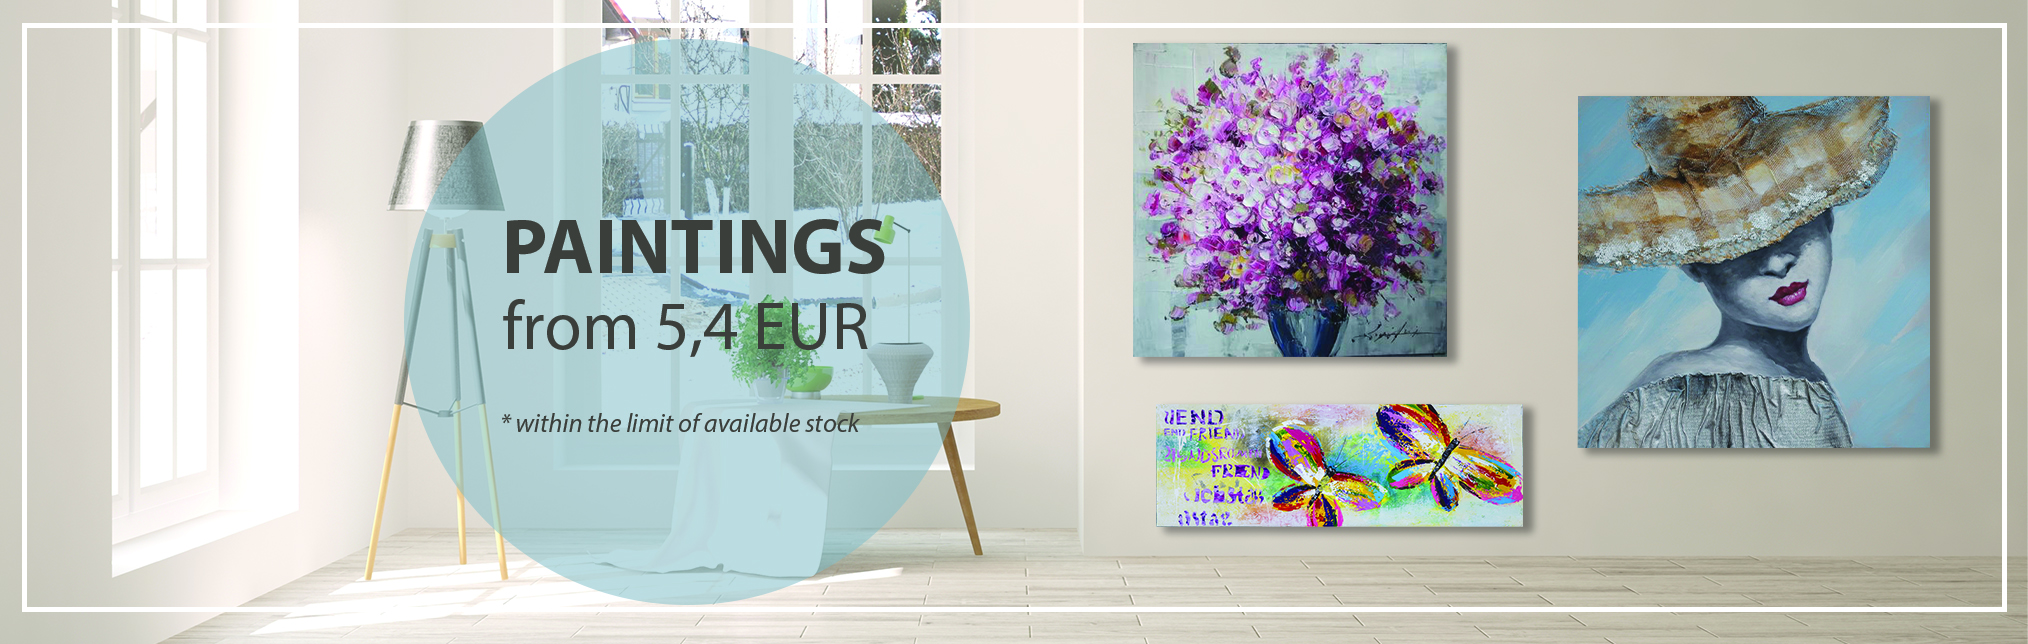 August Promotion - Paintings